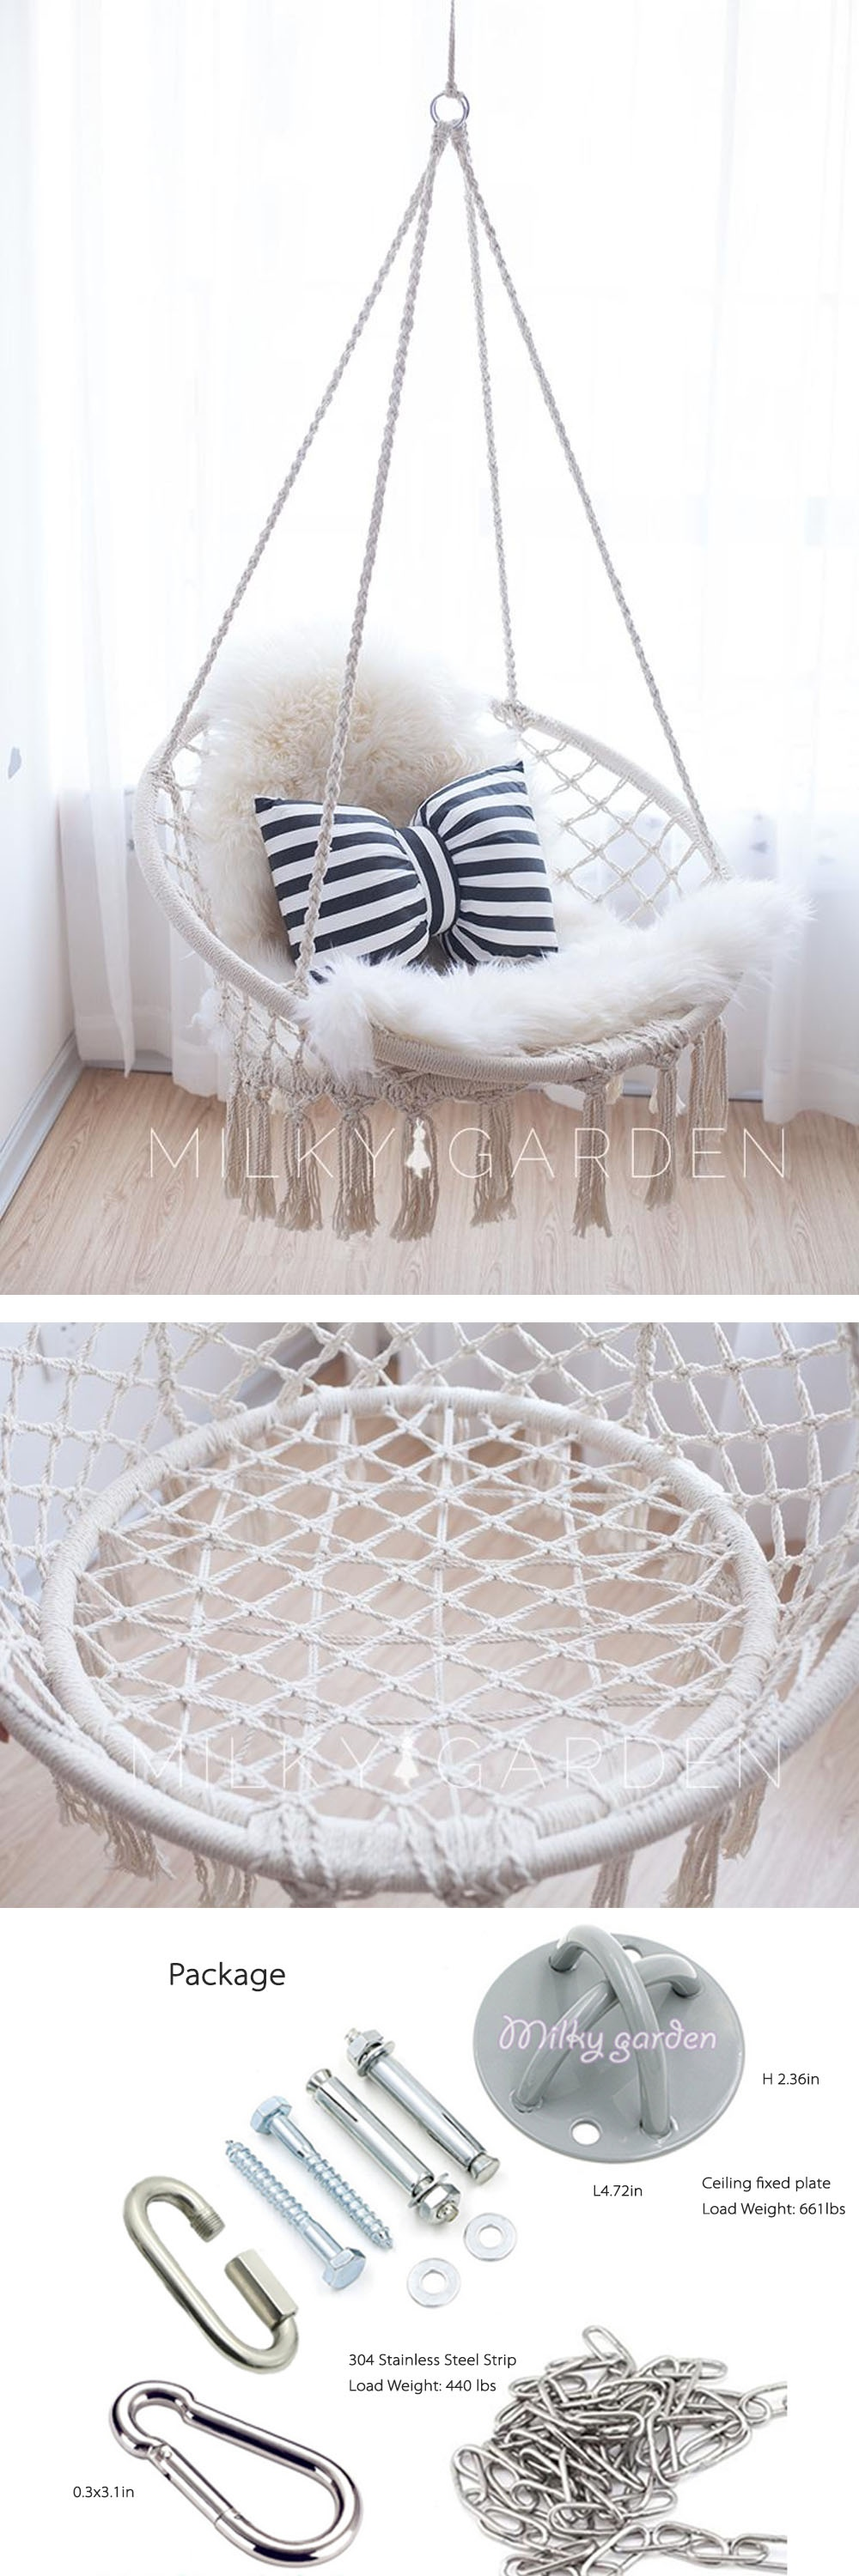 Superb Milky Garden Hammock Chair From Apollo Box Ocoug Best Dining Table And Chair Ideas Images Ocougorg